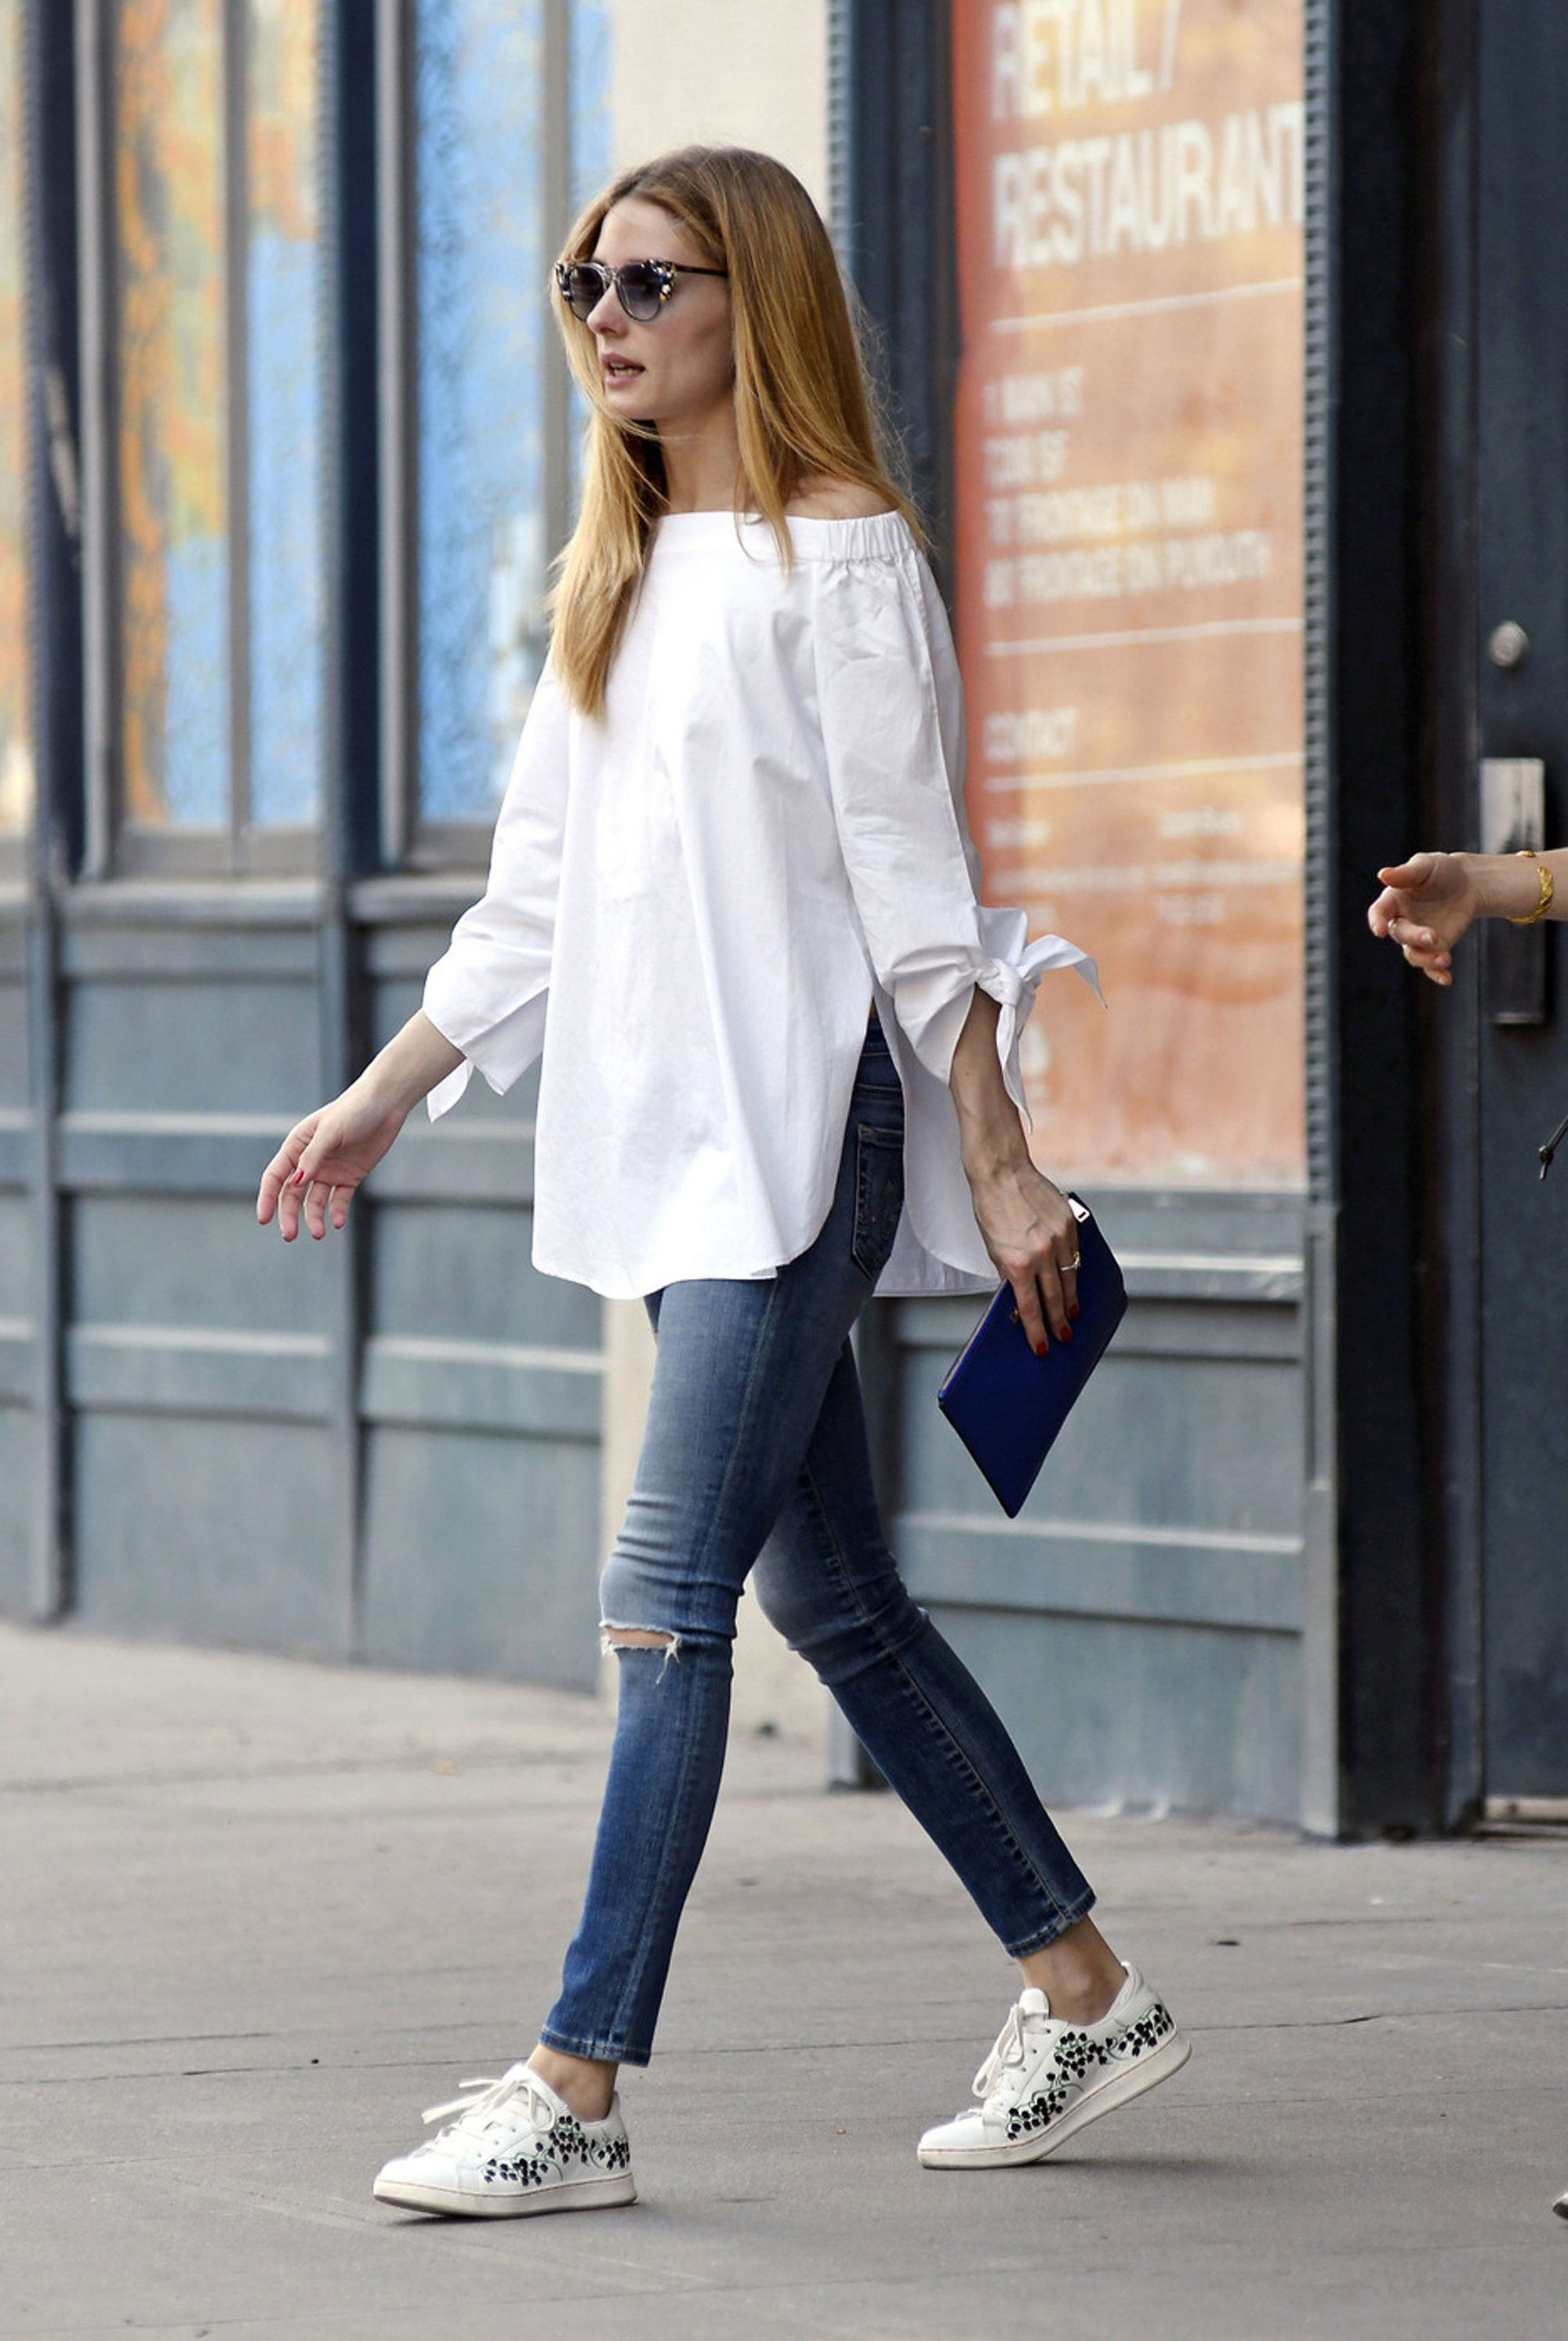 dca5c9c315312 Olivia Palermo Gives Summer Style the Cold Shoulder in 2019 ...